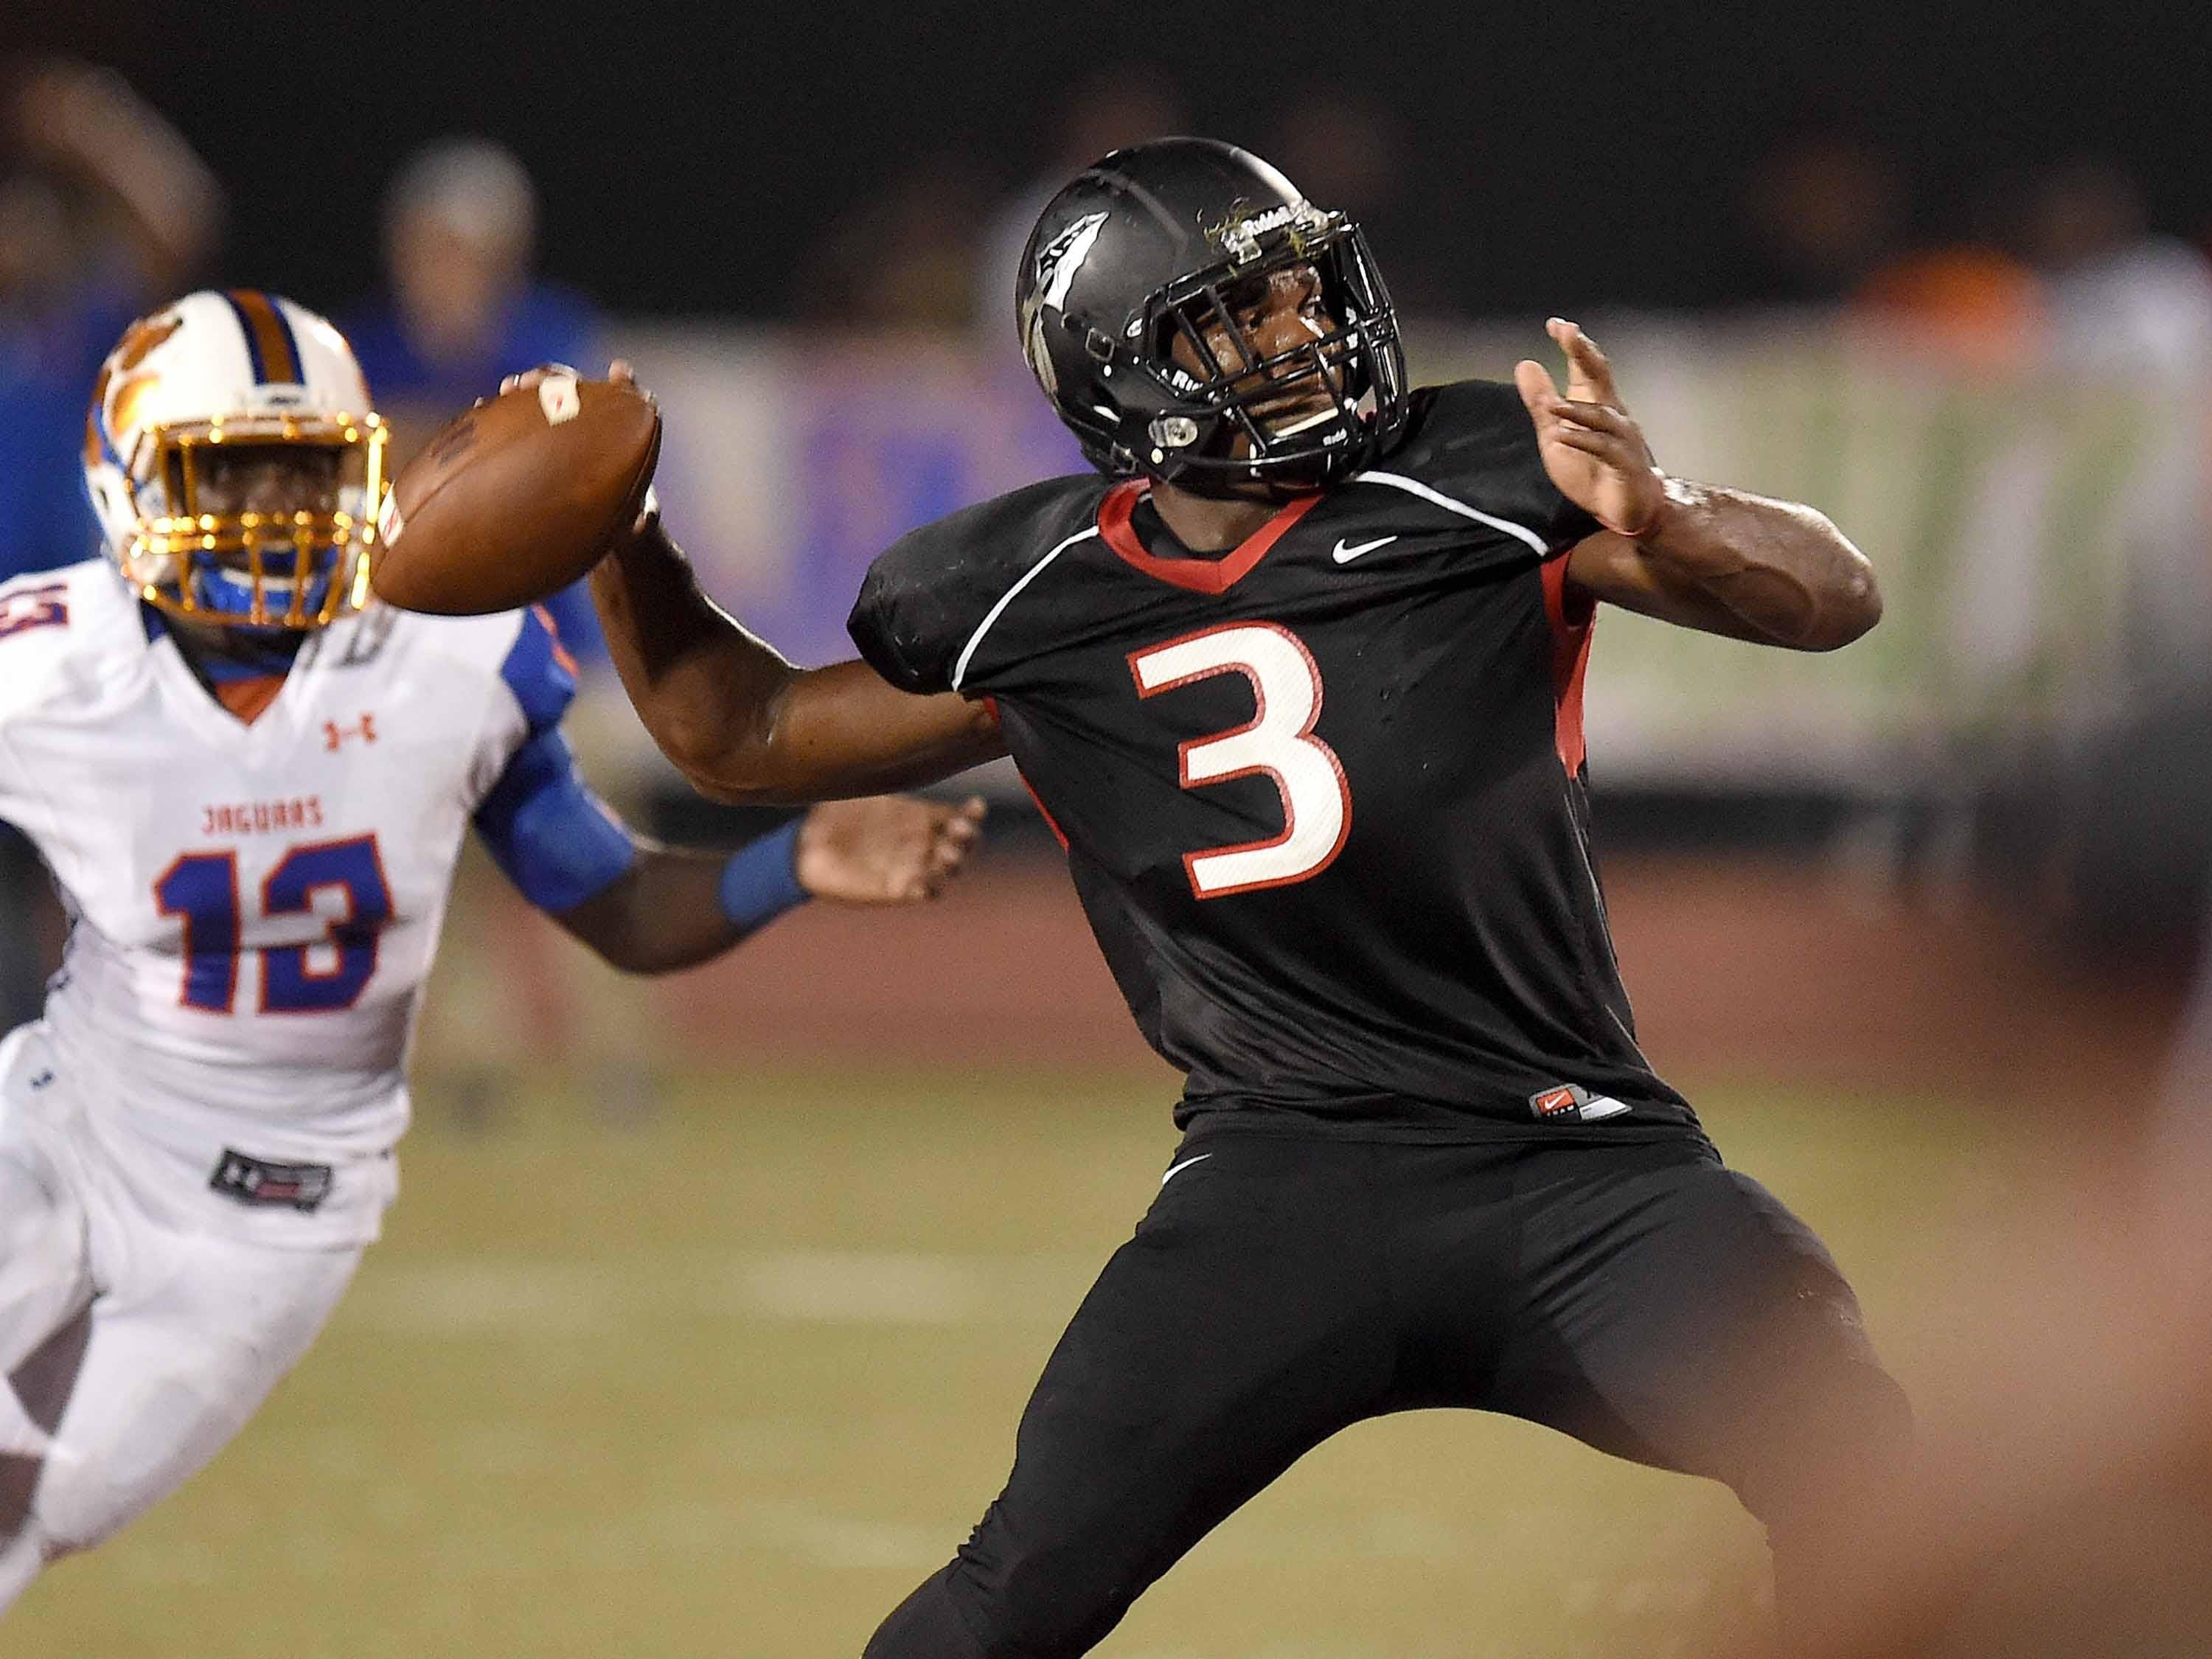 Clinton quarterback Cam Akers (3) rears back to throw a deep sideline pass to Darius Maberry for a touchdown against Madison Central on Friday, September 25, 2015, at Clinton High School in Clinton, Mississippi.